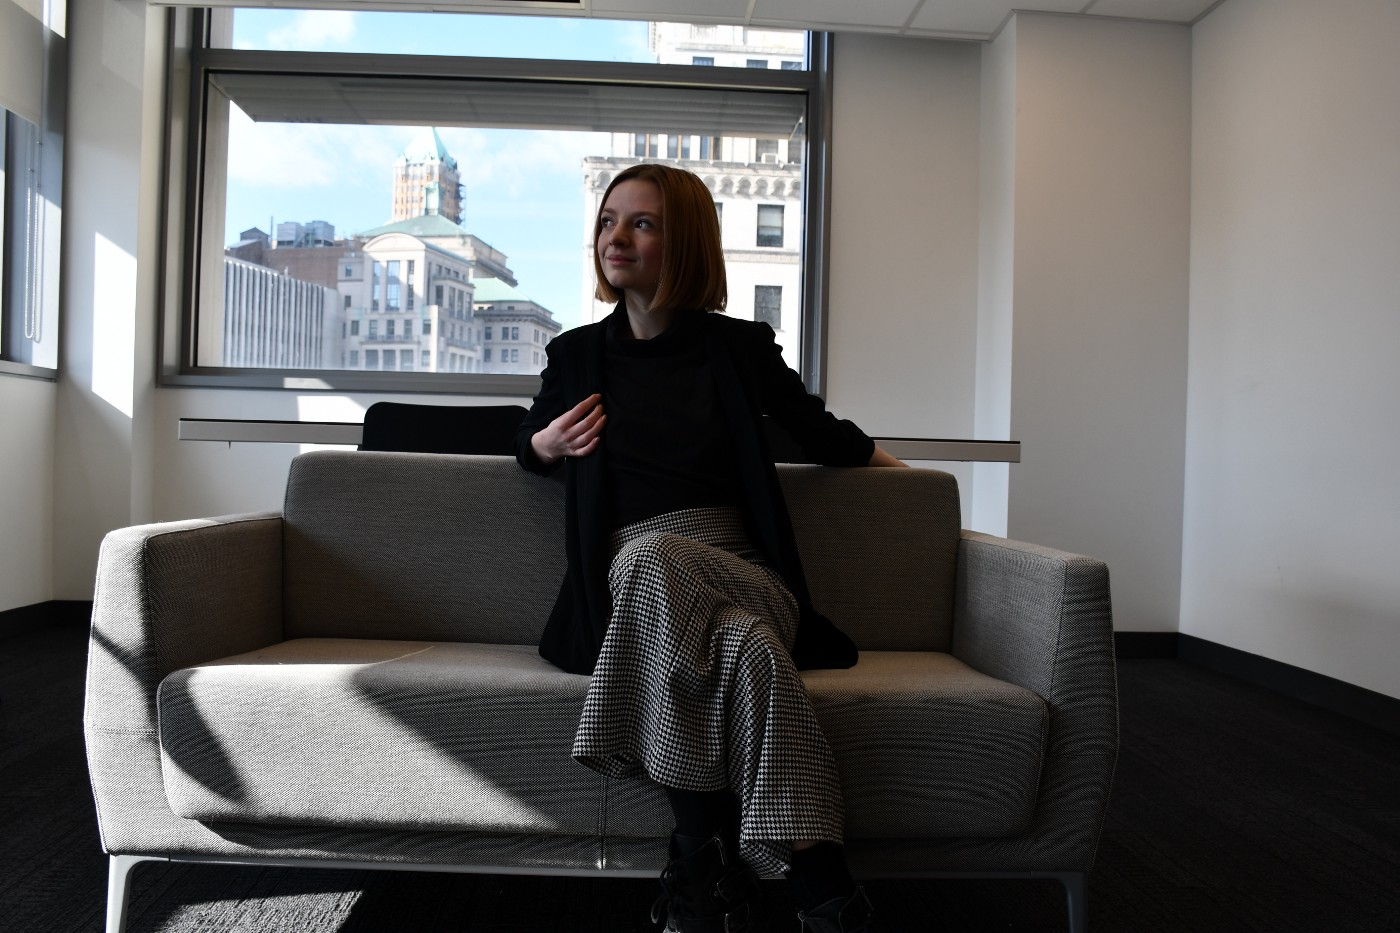 A blonde white woman sitting on a grey couch in front of a window.